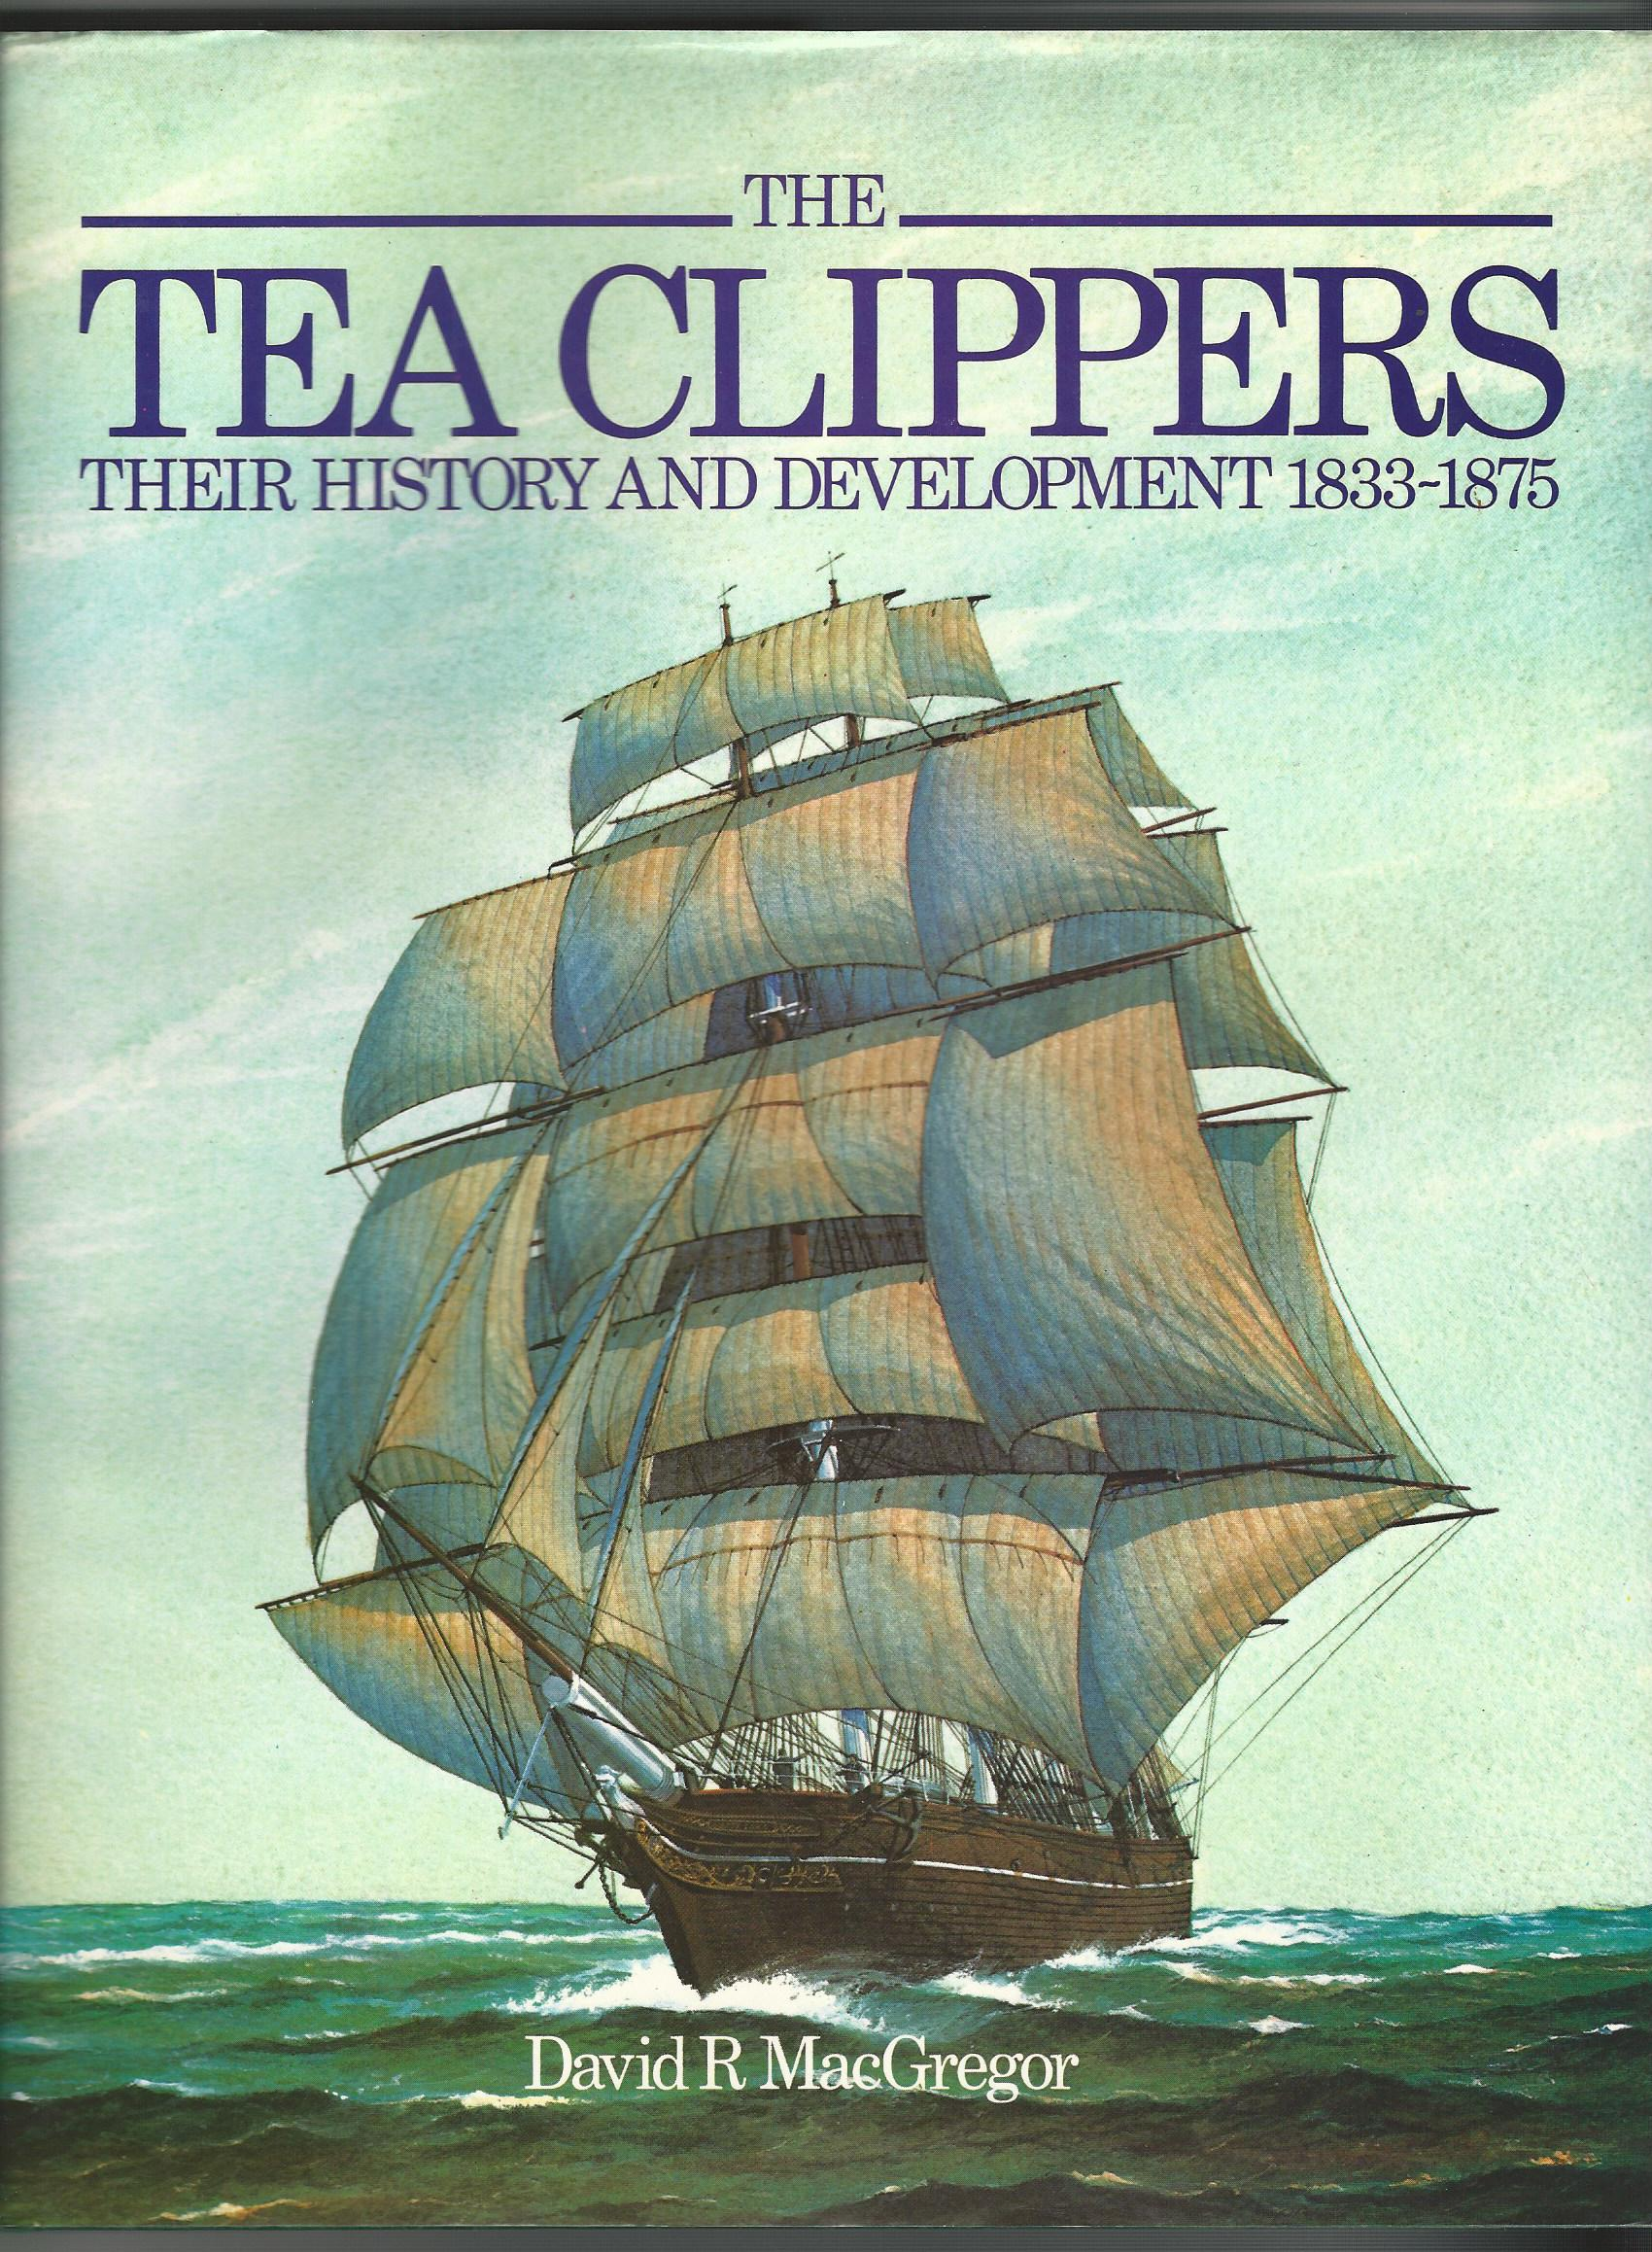 Image for The Tea Clippers: Their History and Development 1833-1875.